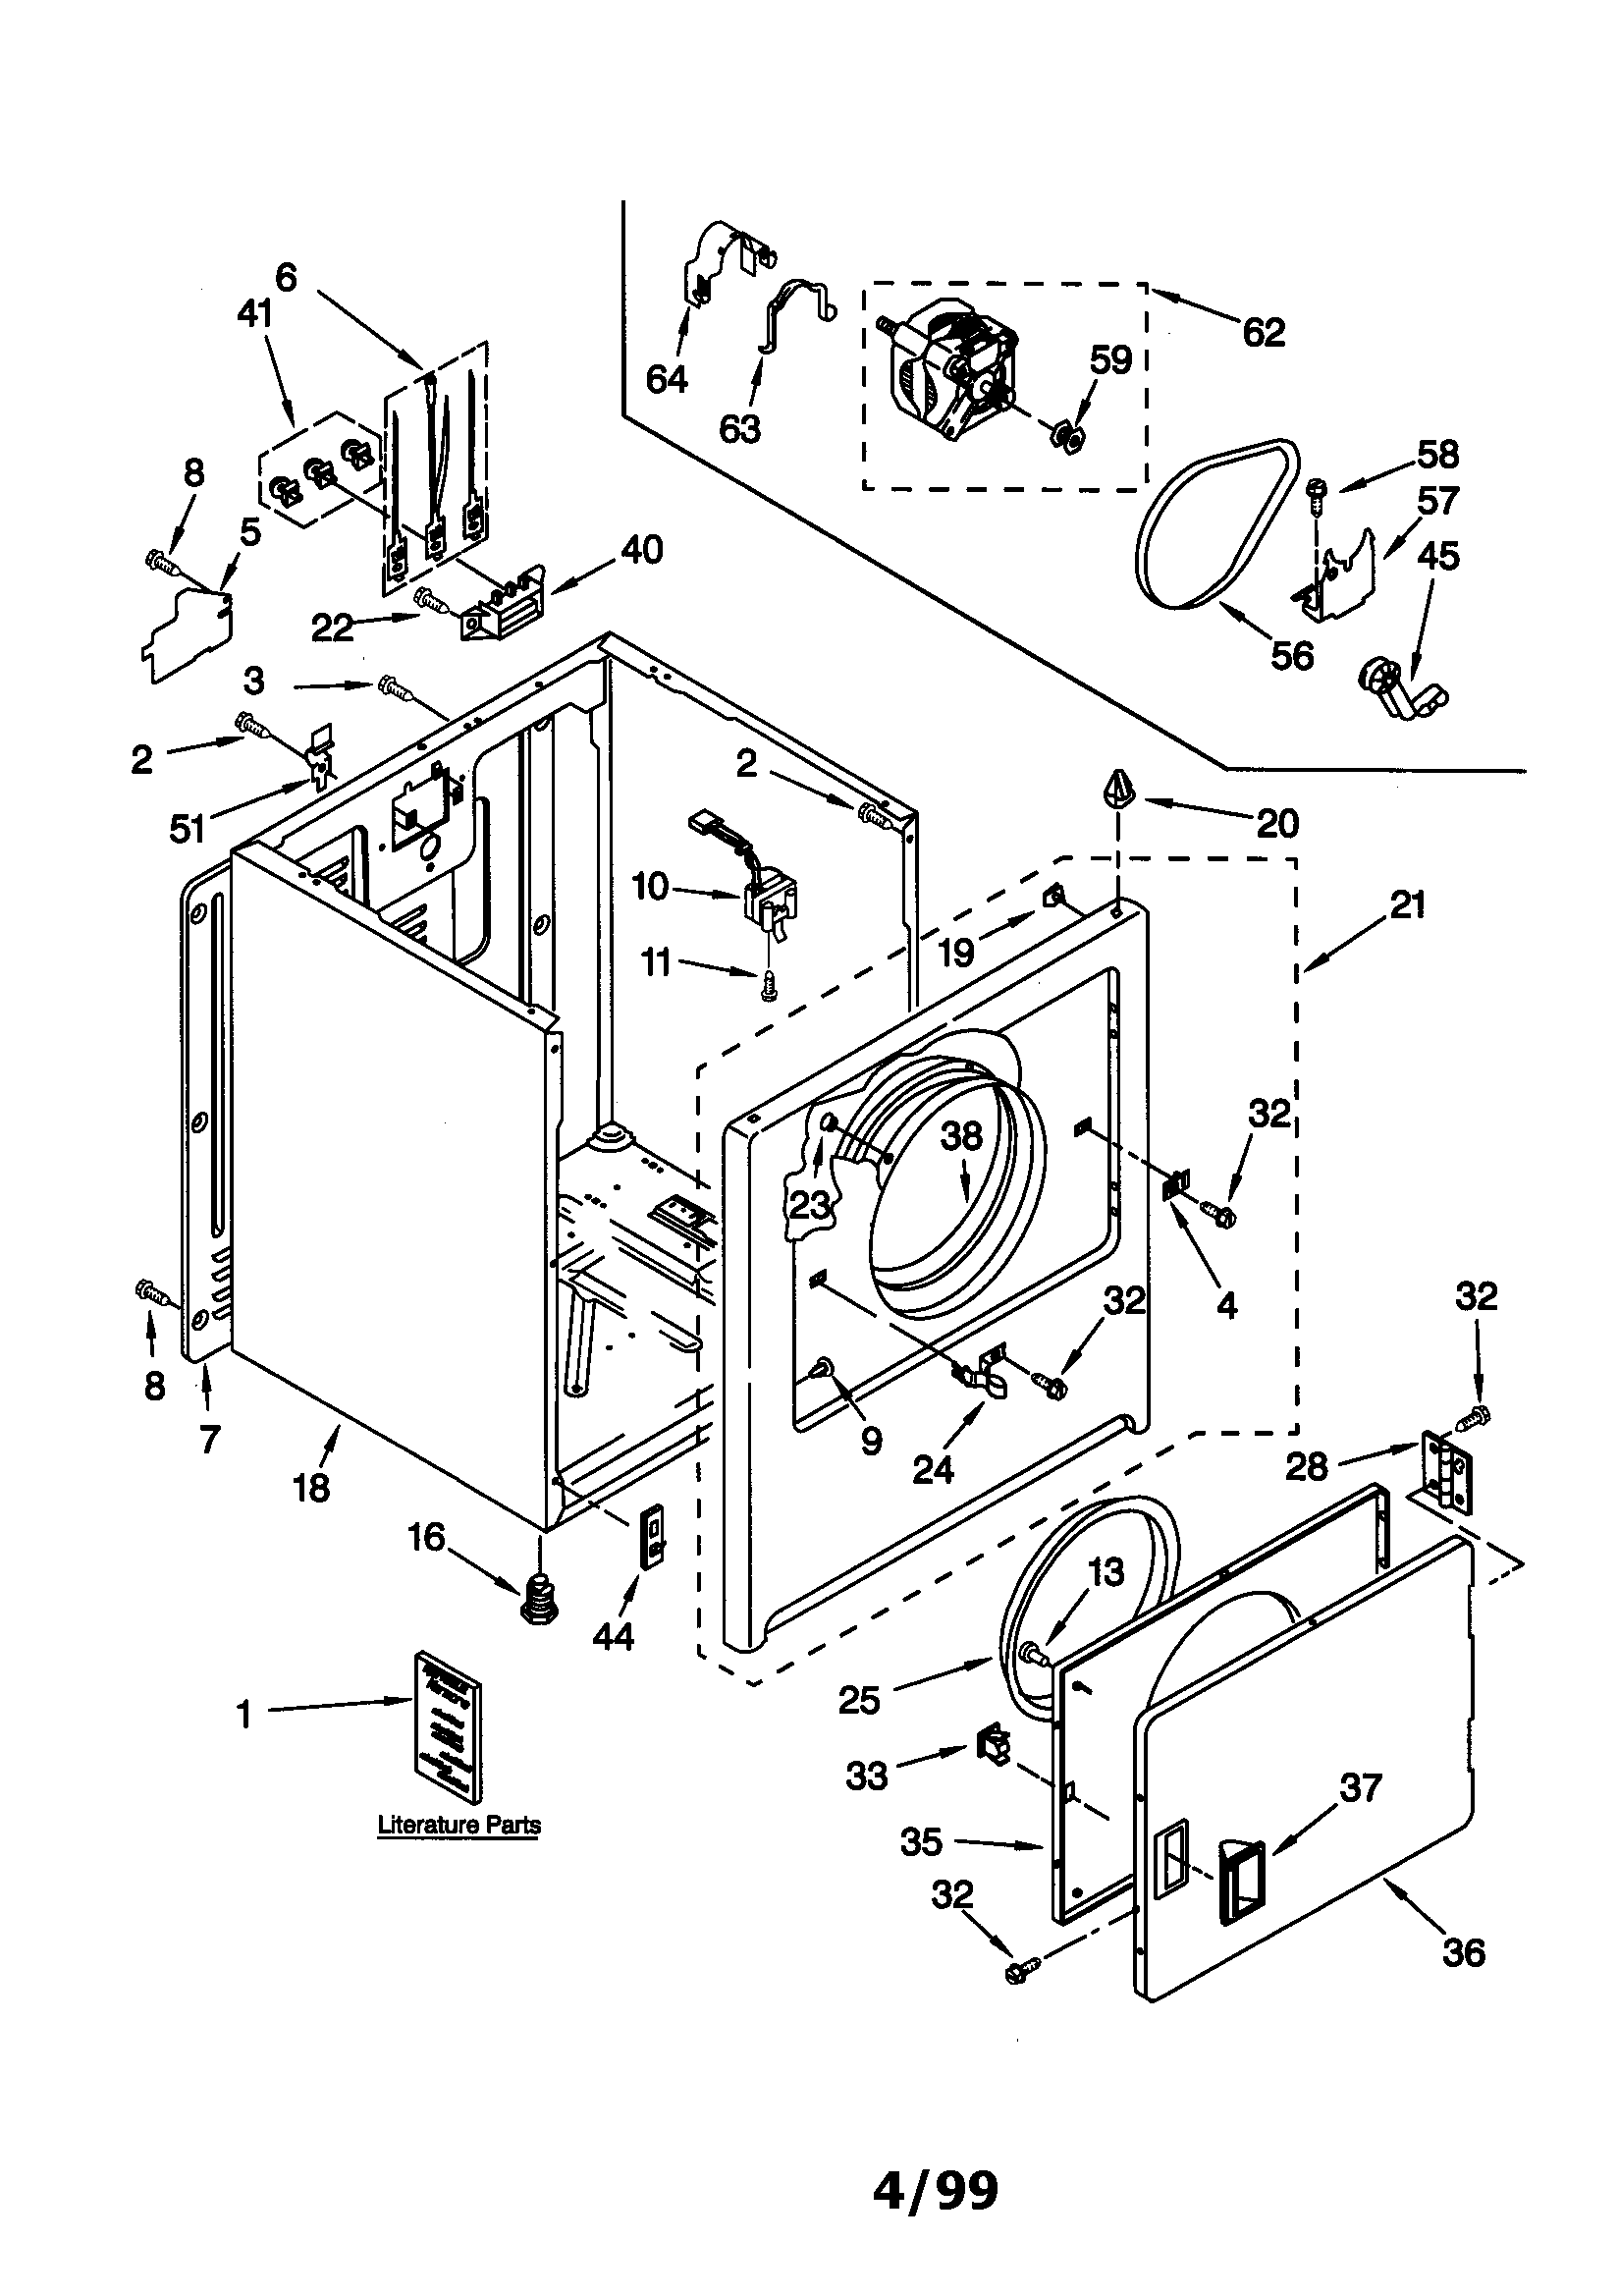 Fantastic Cabinet Parts Diagram And Parts List For Janome Sewingmachineparts Wiring Cloud Xortanetembamohammedshrineorg